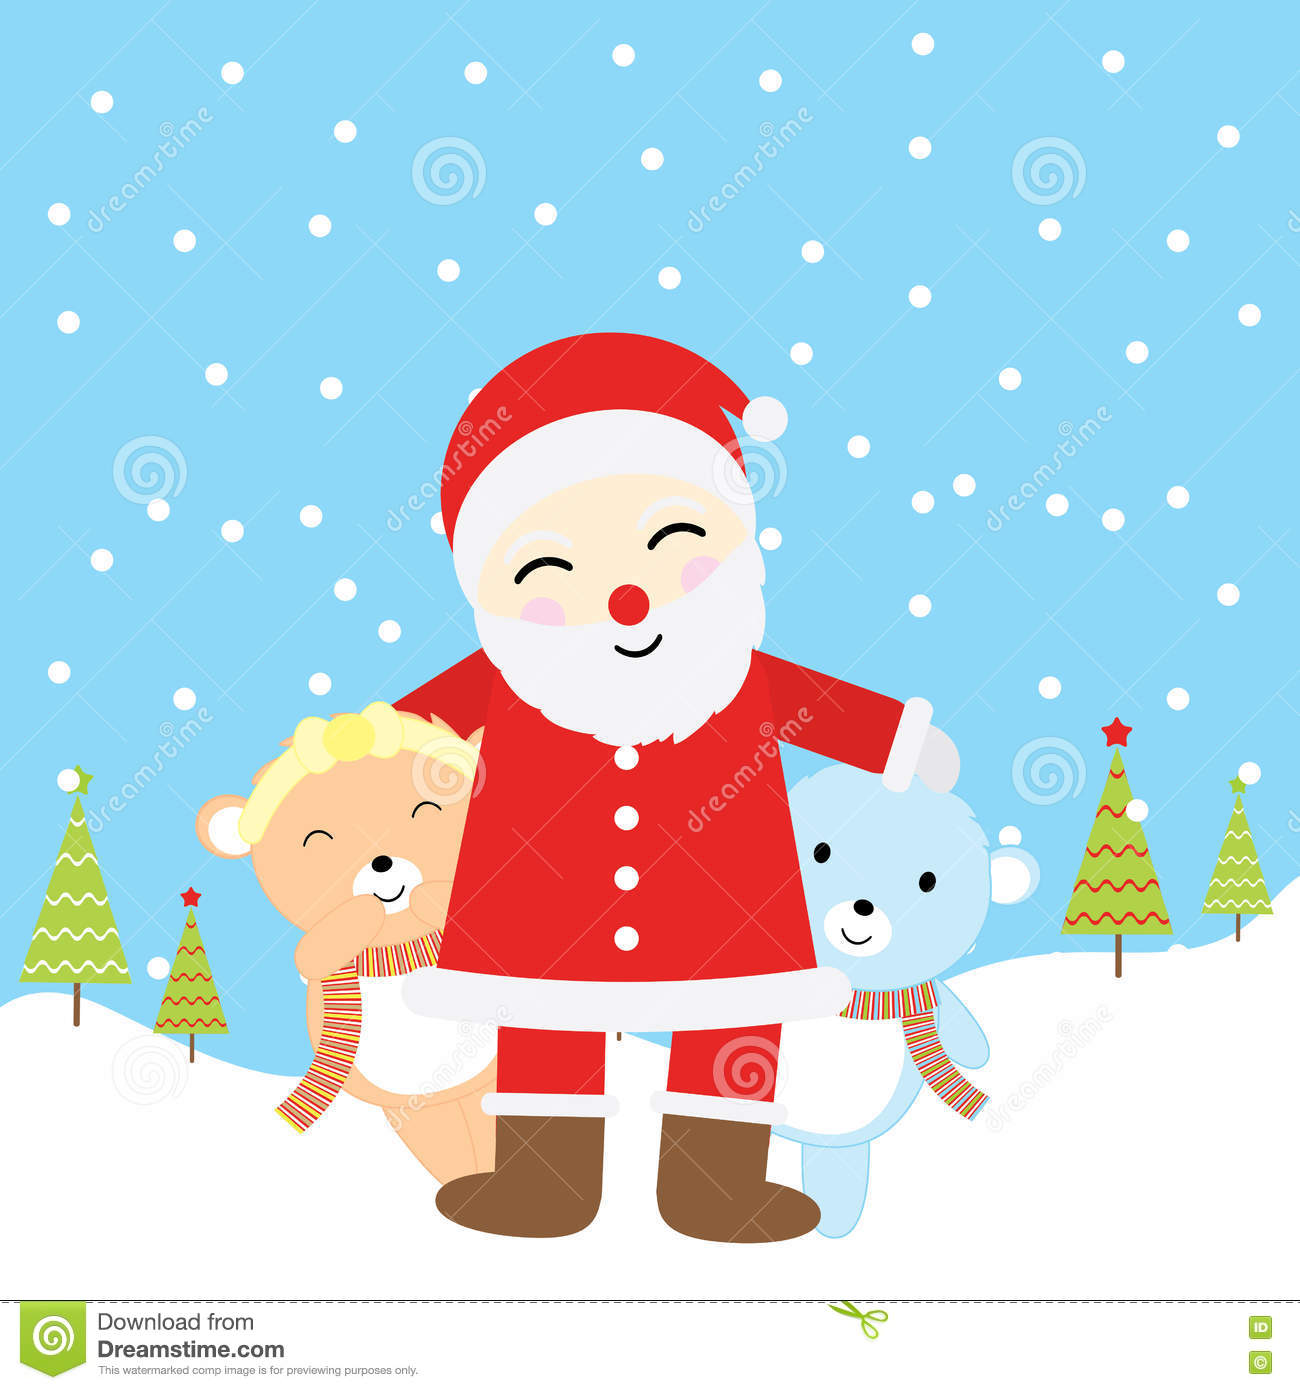 Christmas Illustration With Cute Baby Bears And Santa Claus Suitable For Xmas Greeting Card Wallpaper